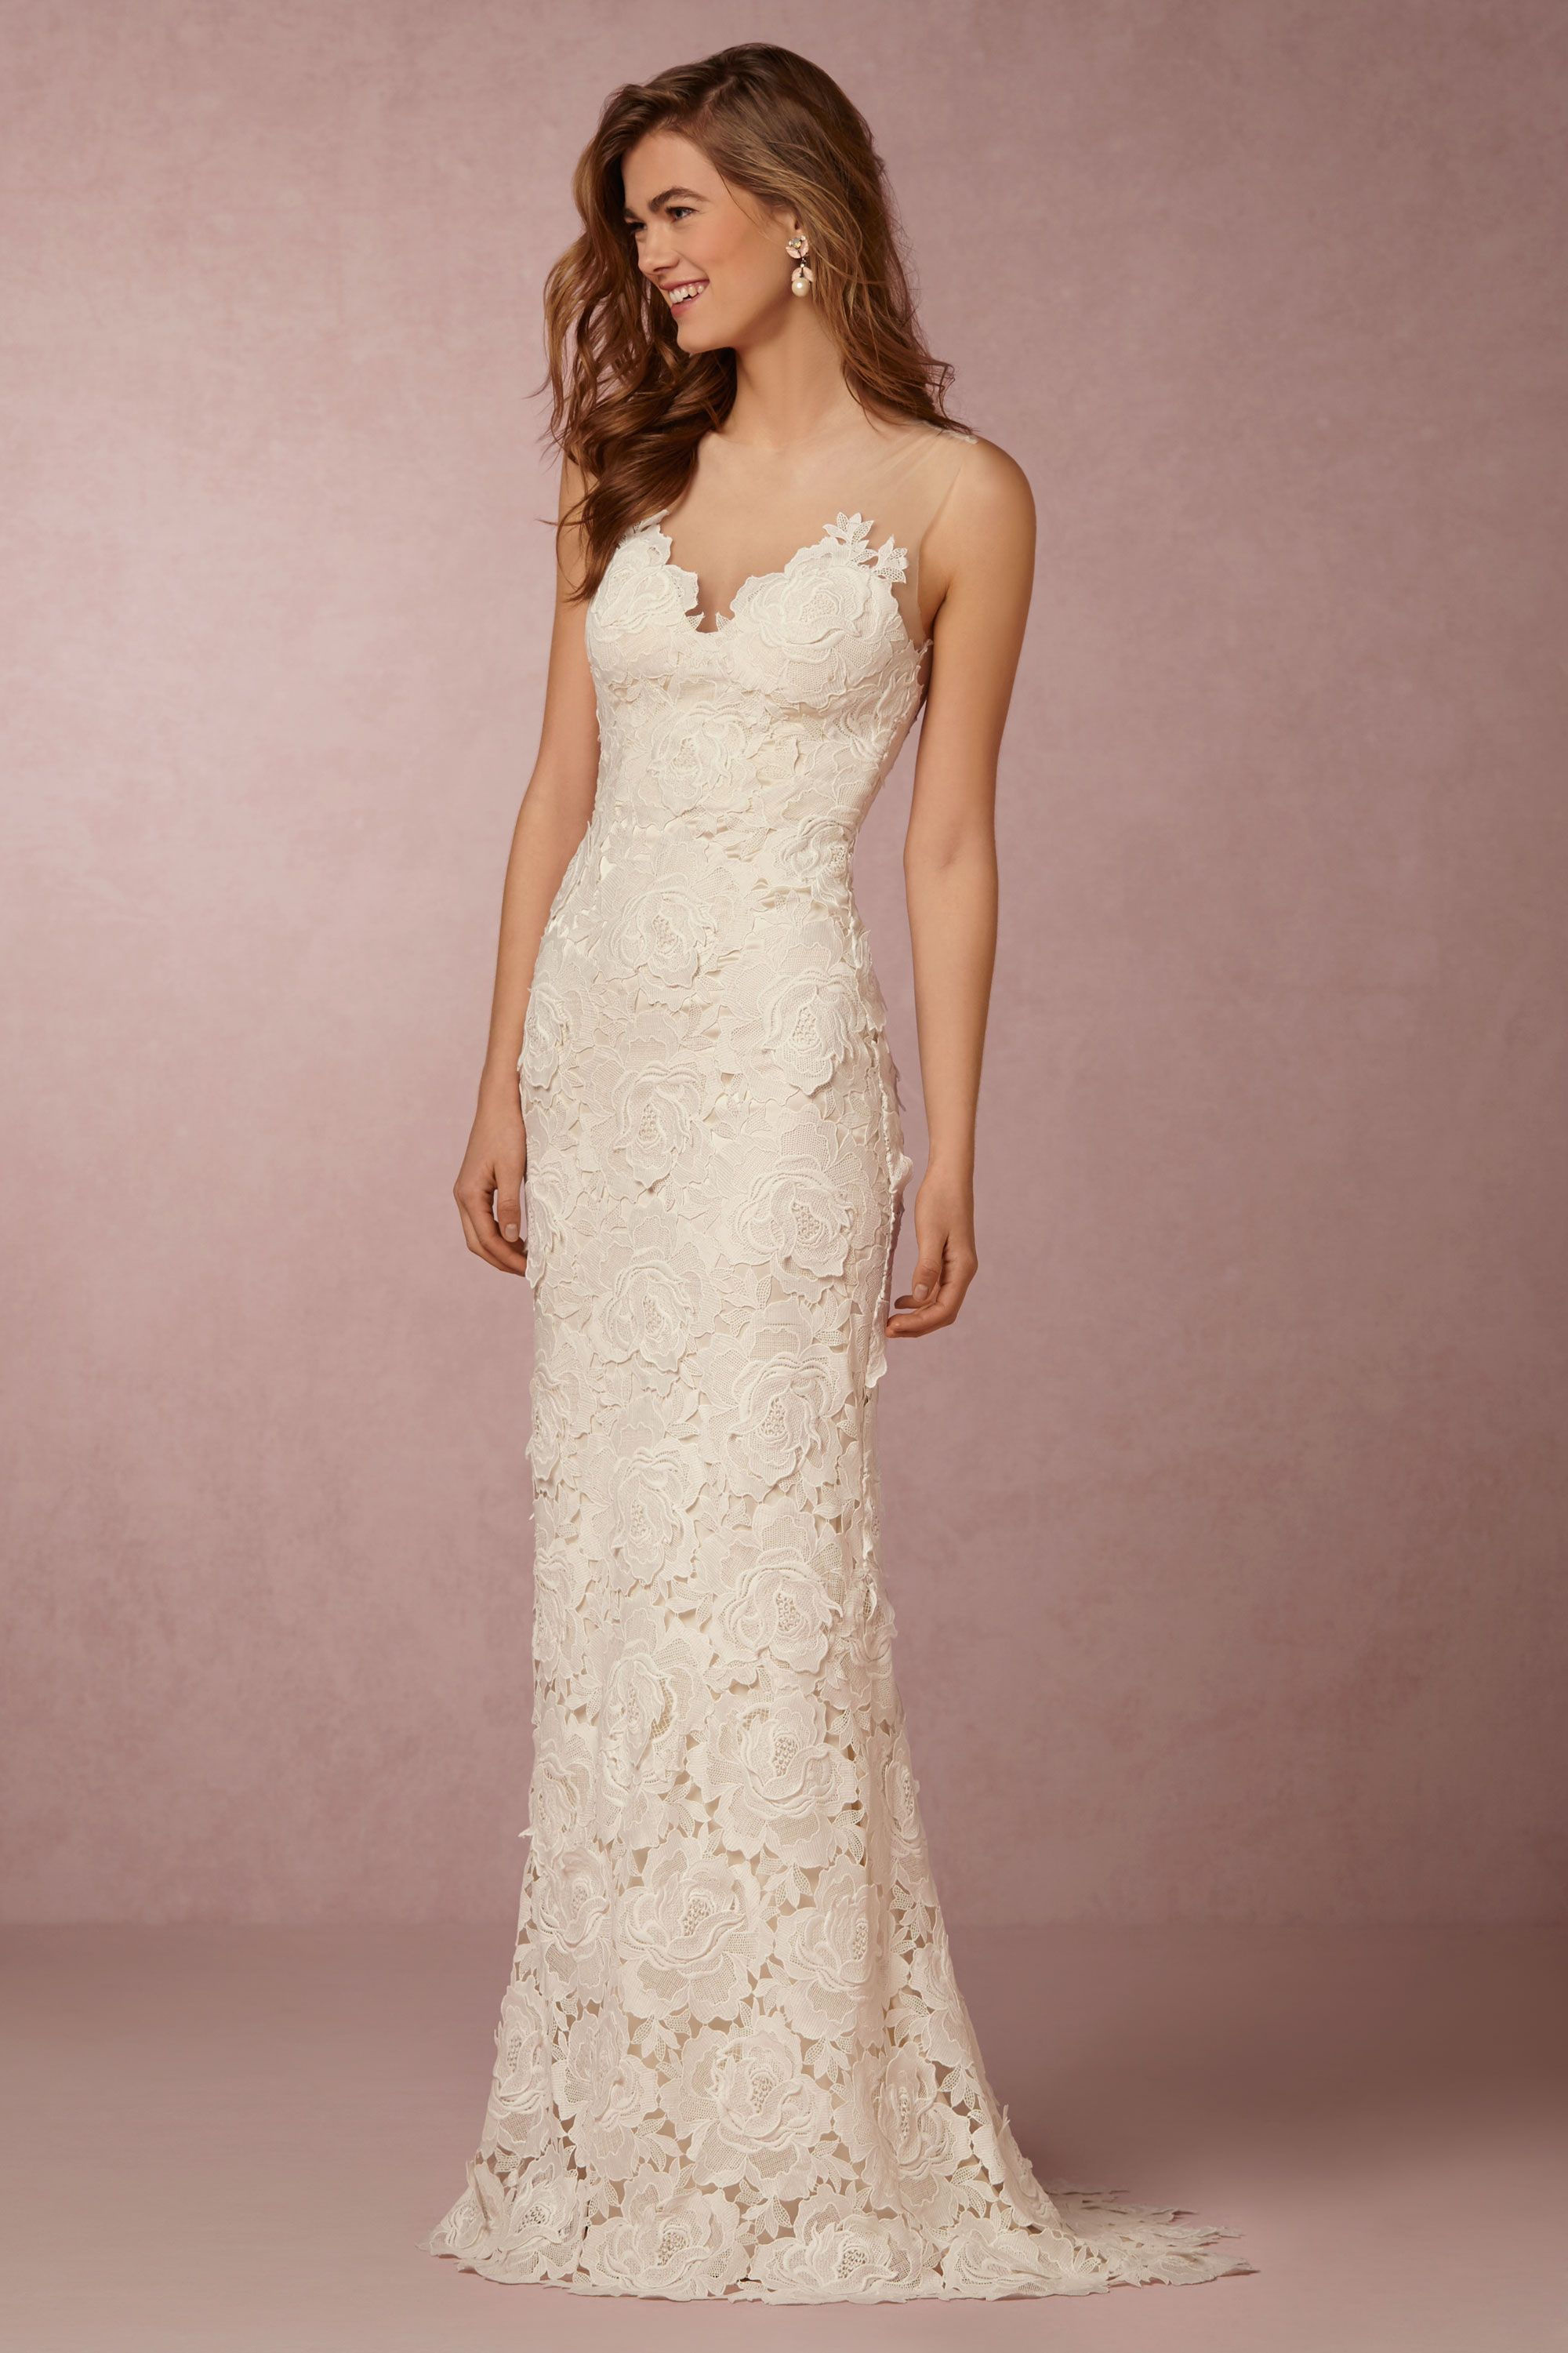 simple vintage wedding dresses Lace wedding dress with a bold floral motif The figure hugging silhouette and illusion neckline